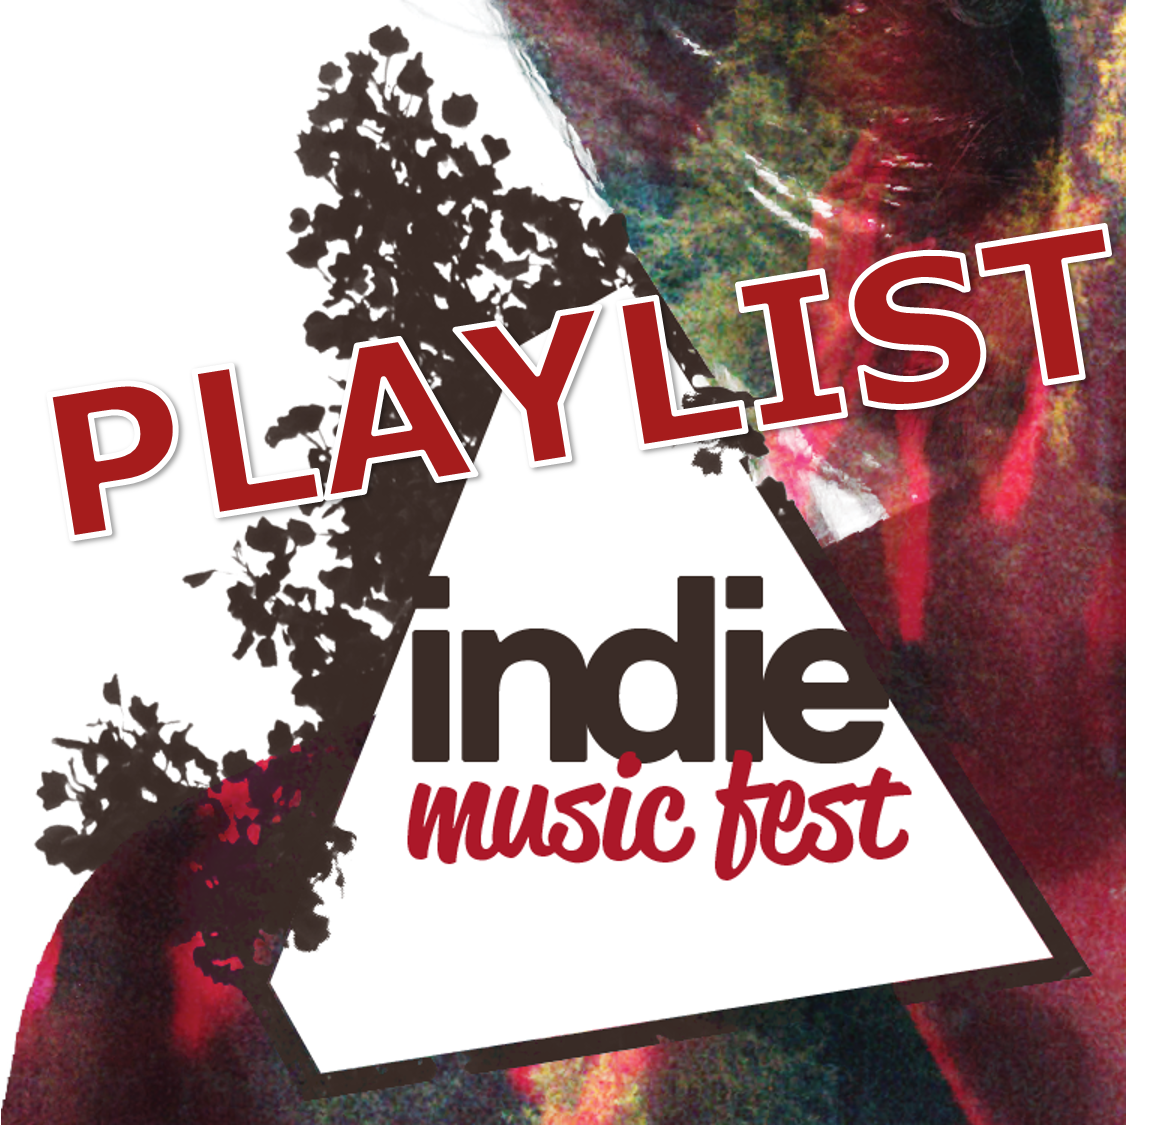 Playlist Indie Music Fest